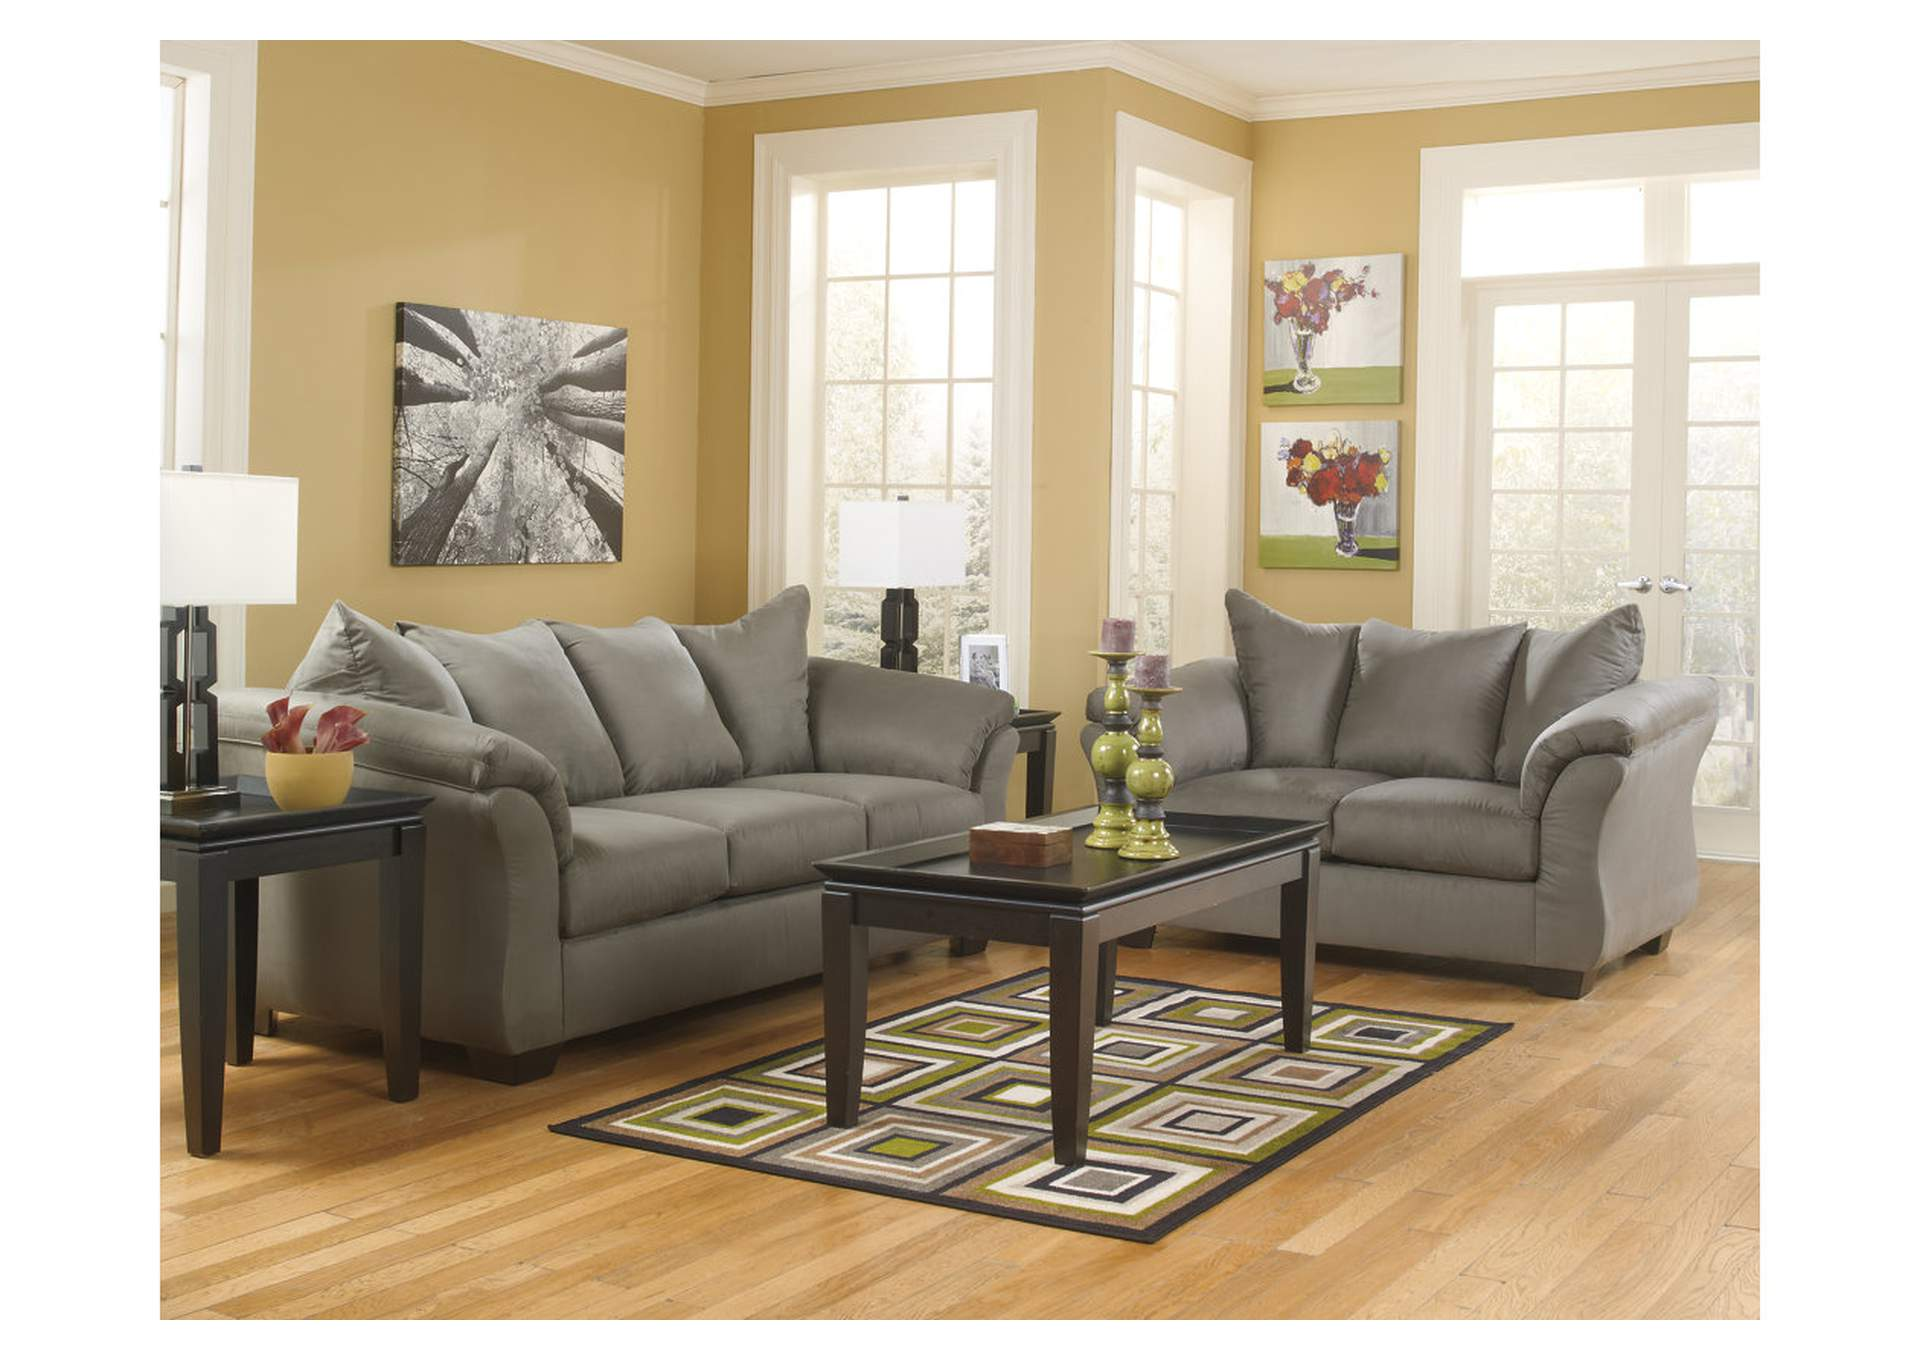 Living Room Sets In Philadelphia mattress world furniture - philadelphia, pa darcy cobblestone sofa